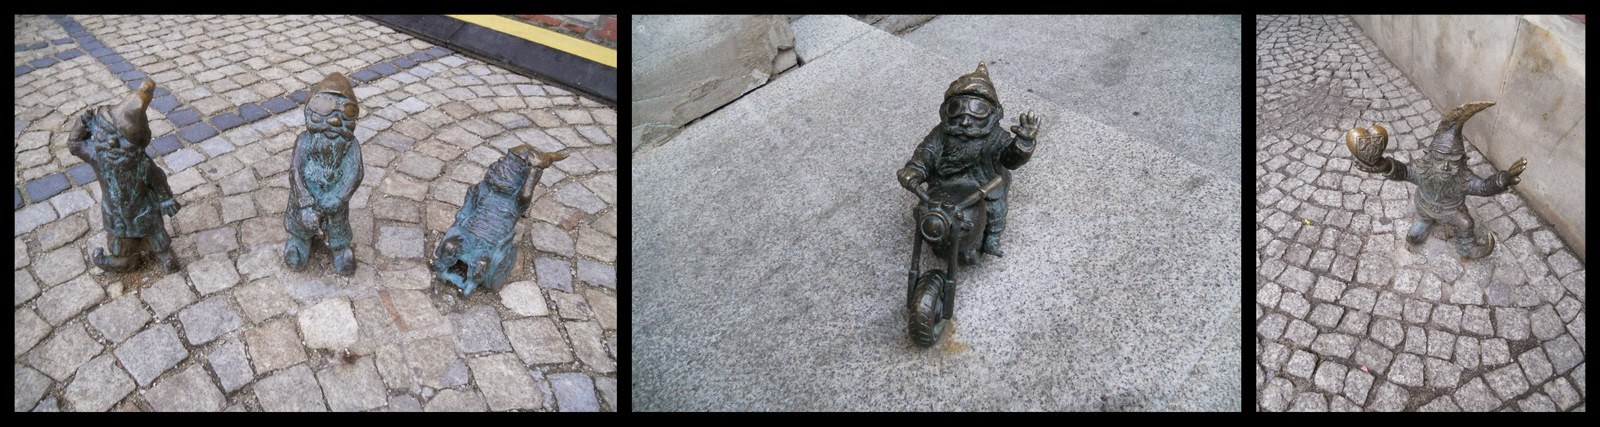 Gnome Hunting in Wroclaw